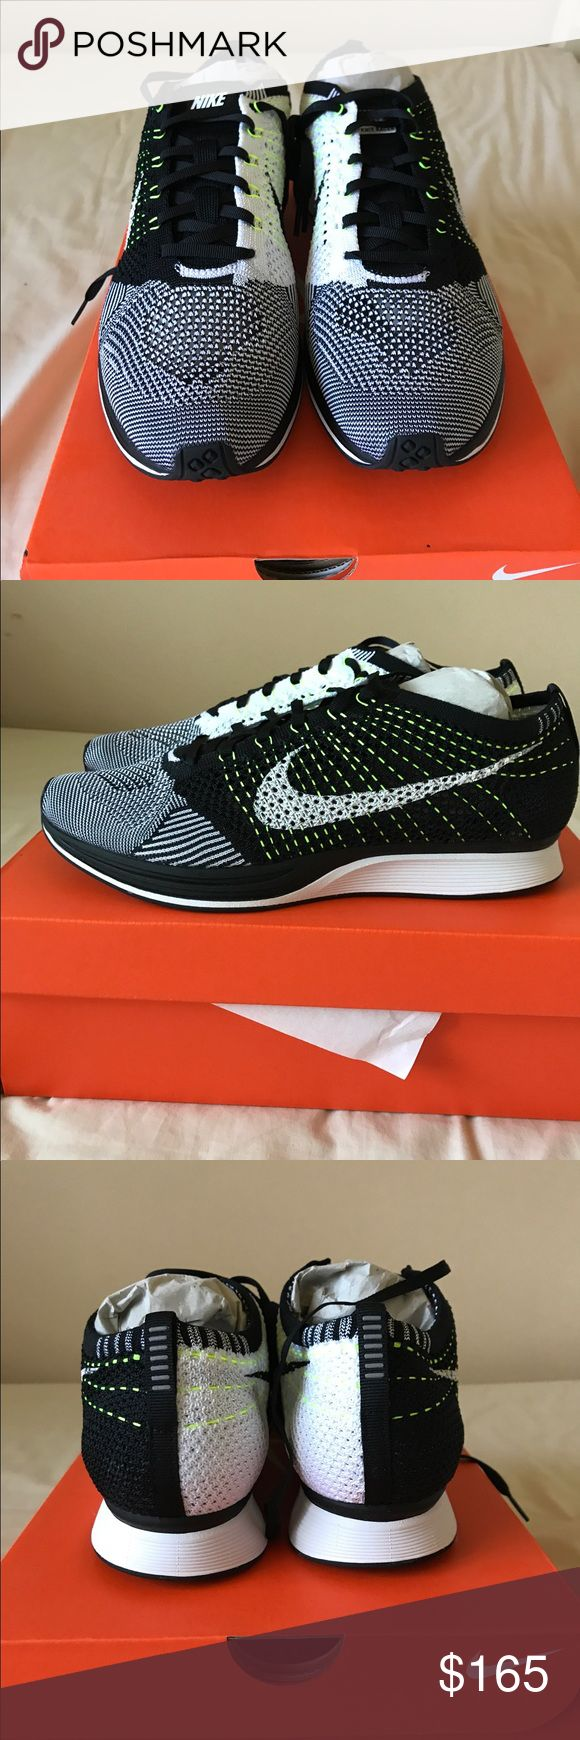 Nike Flyknit Racer Black/White/Volt This is a brand new pair of Nike Flyknit racer. The shoe size is 11. The color of the shoe is black/white and Volt. Nike Shoes Athletic Shoes